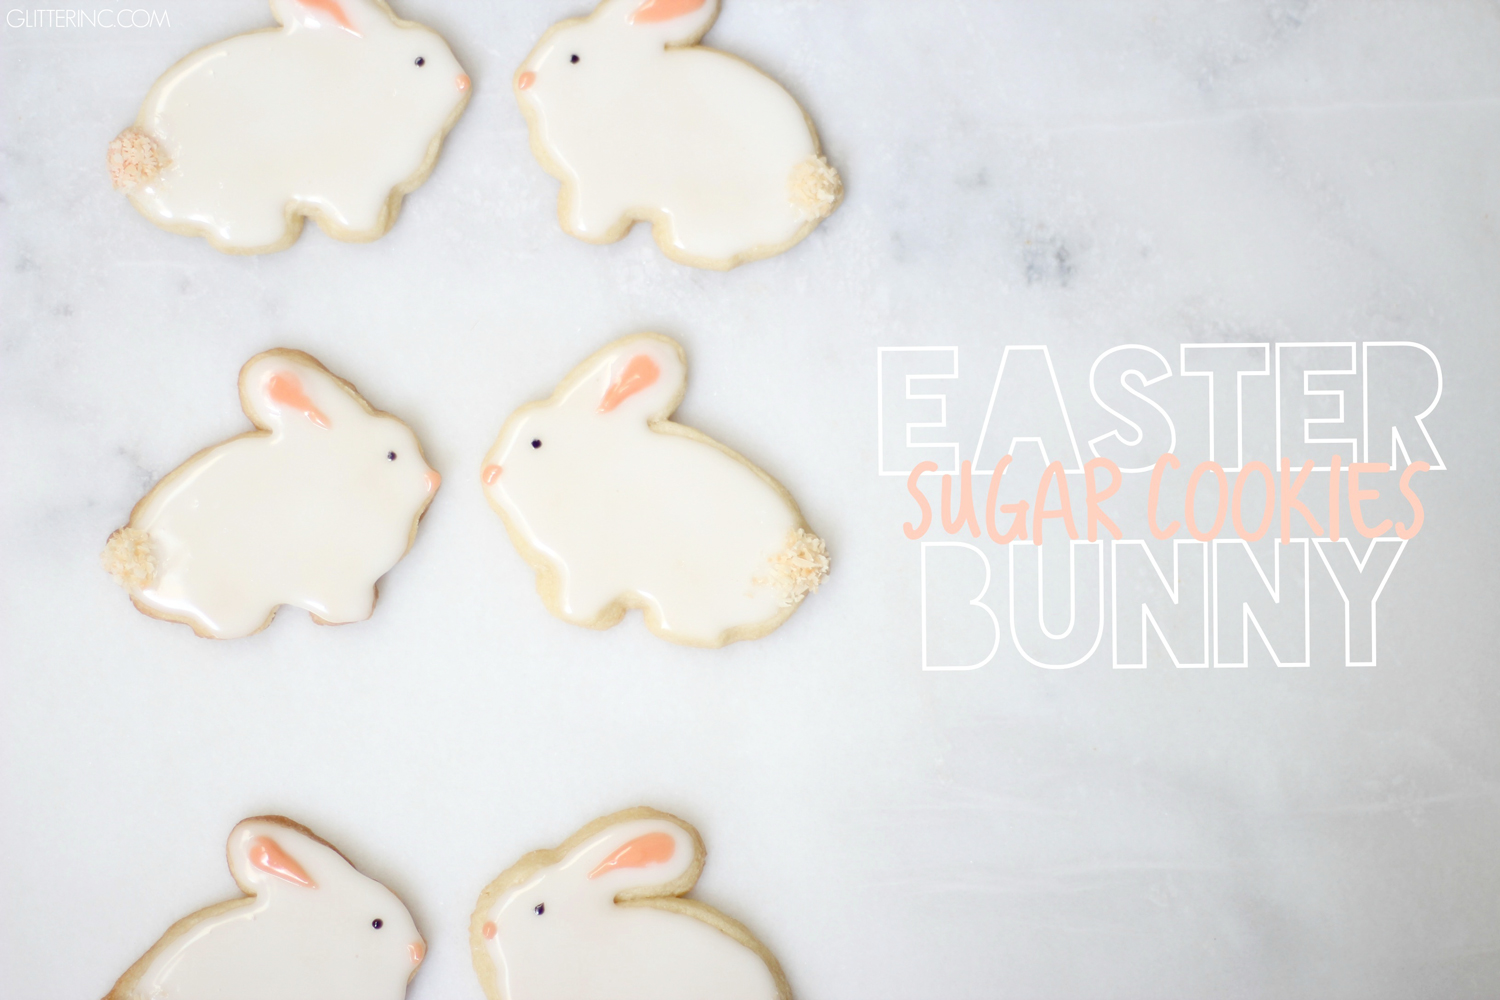 It's almost Easter! Make these delicious Easter bunny sugar cookies with our favorite sugar cookie recipe and a simple royal icing recipe you will use again and again for all of your sugar cookie decorating! | glitterinc.com | @glitterinc